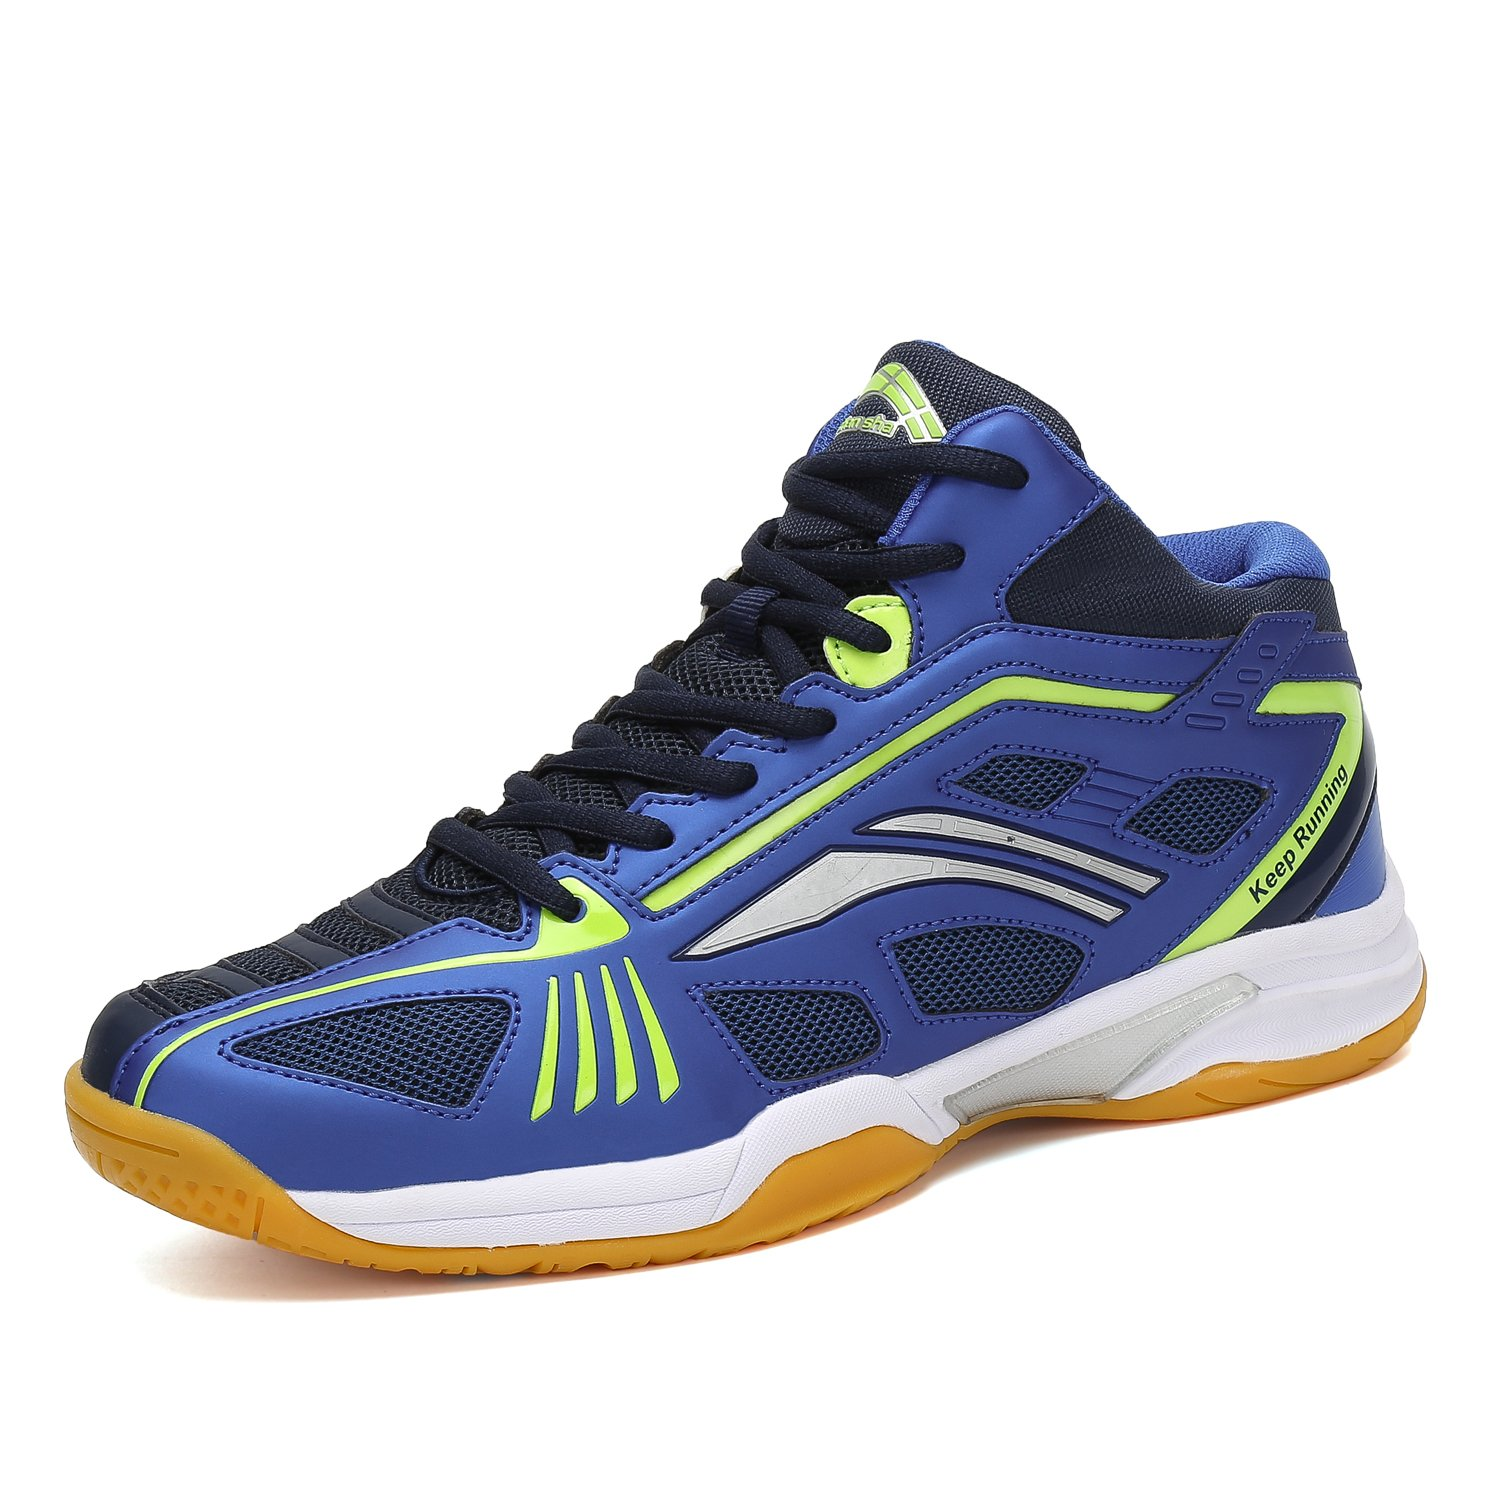 blueee 6.5 D(M) US Fashion Sneakers Badminton shoes Men Non Slip Indoor Court Tennis Volleyball Sneakers Safety Training shoes